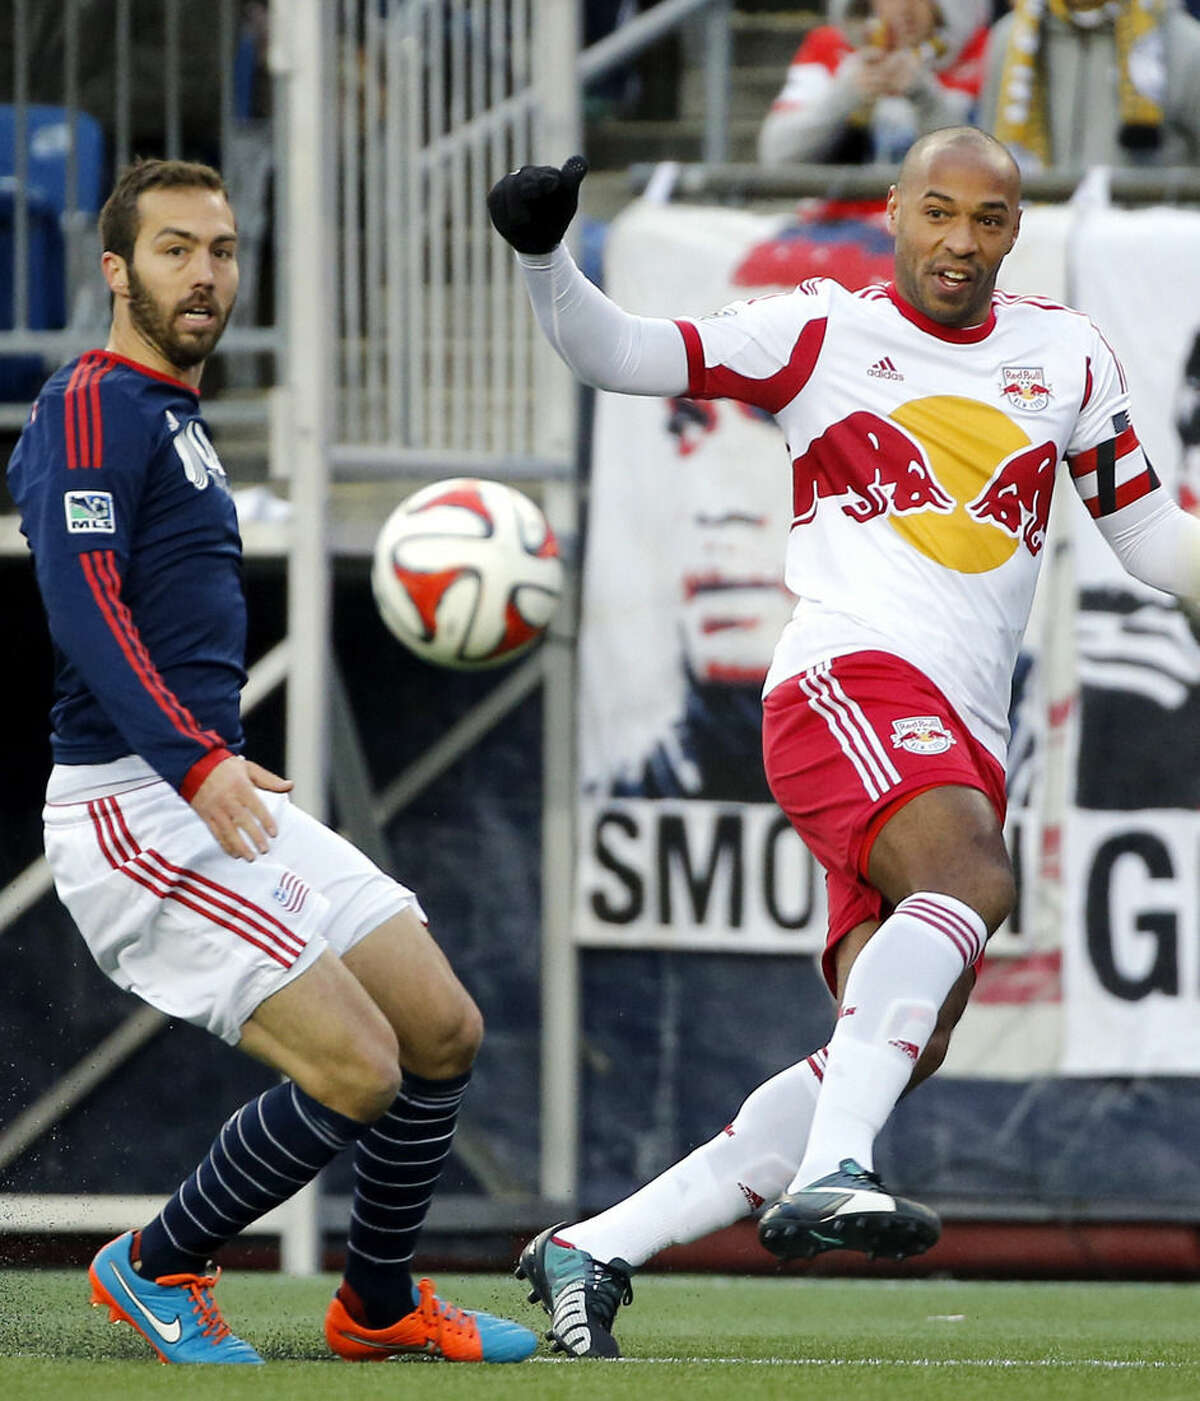 New York Red Bulls forward Thierry Henry, right, sends the ball toward the goal as New England Revolution's A.J. Soares defends, left, during the first half of the second soccer game of the MLS Eastern Conference final in Foxborough, Mass., Saturday, Nov. 29, 2014. The match ended 2-2 and New England advanced to the MLS Cup with a two-game aggregate 4-3. (AP Photo/Elise Amendola)